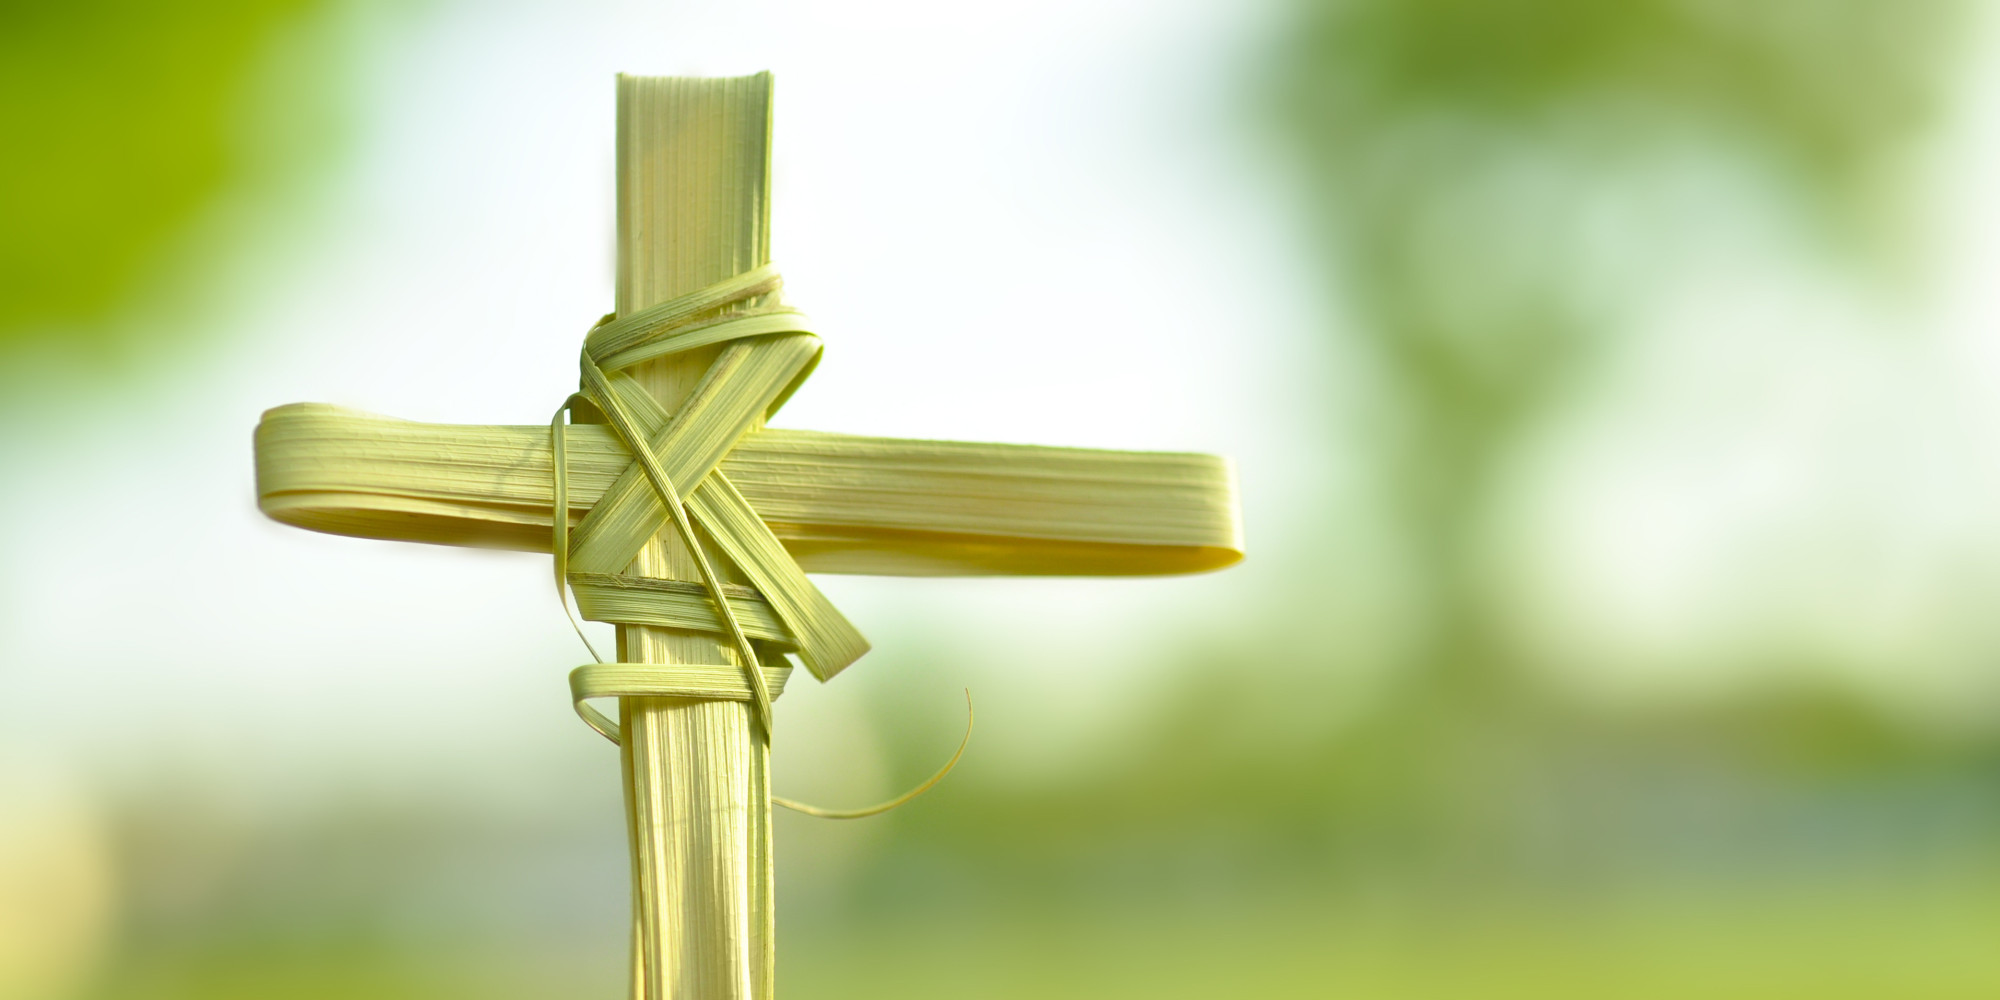 Happy Palm Sunday 2019 Whatsapp Status Dp fb Profile Cover ... - photo#35